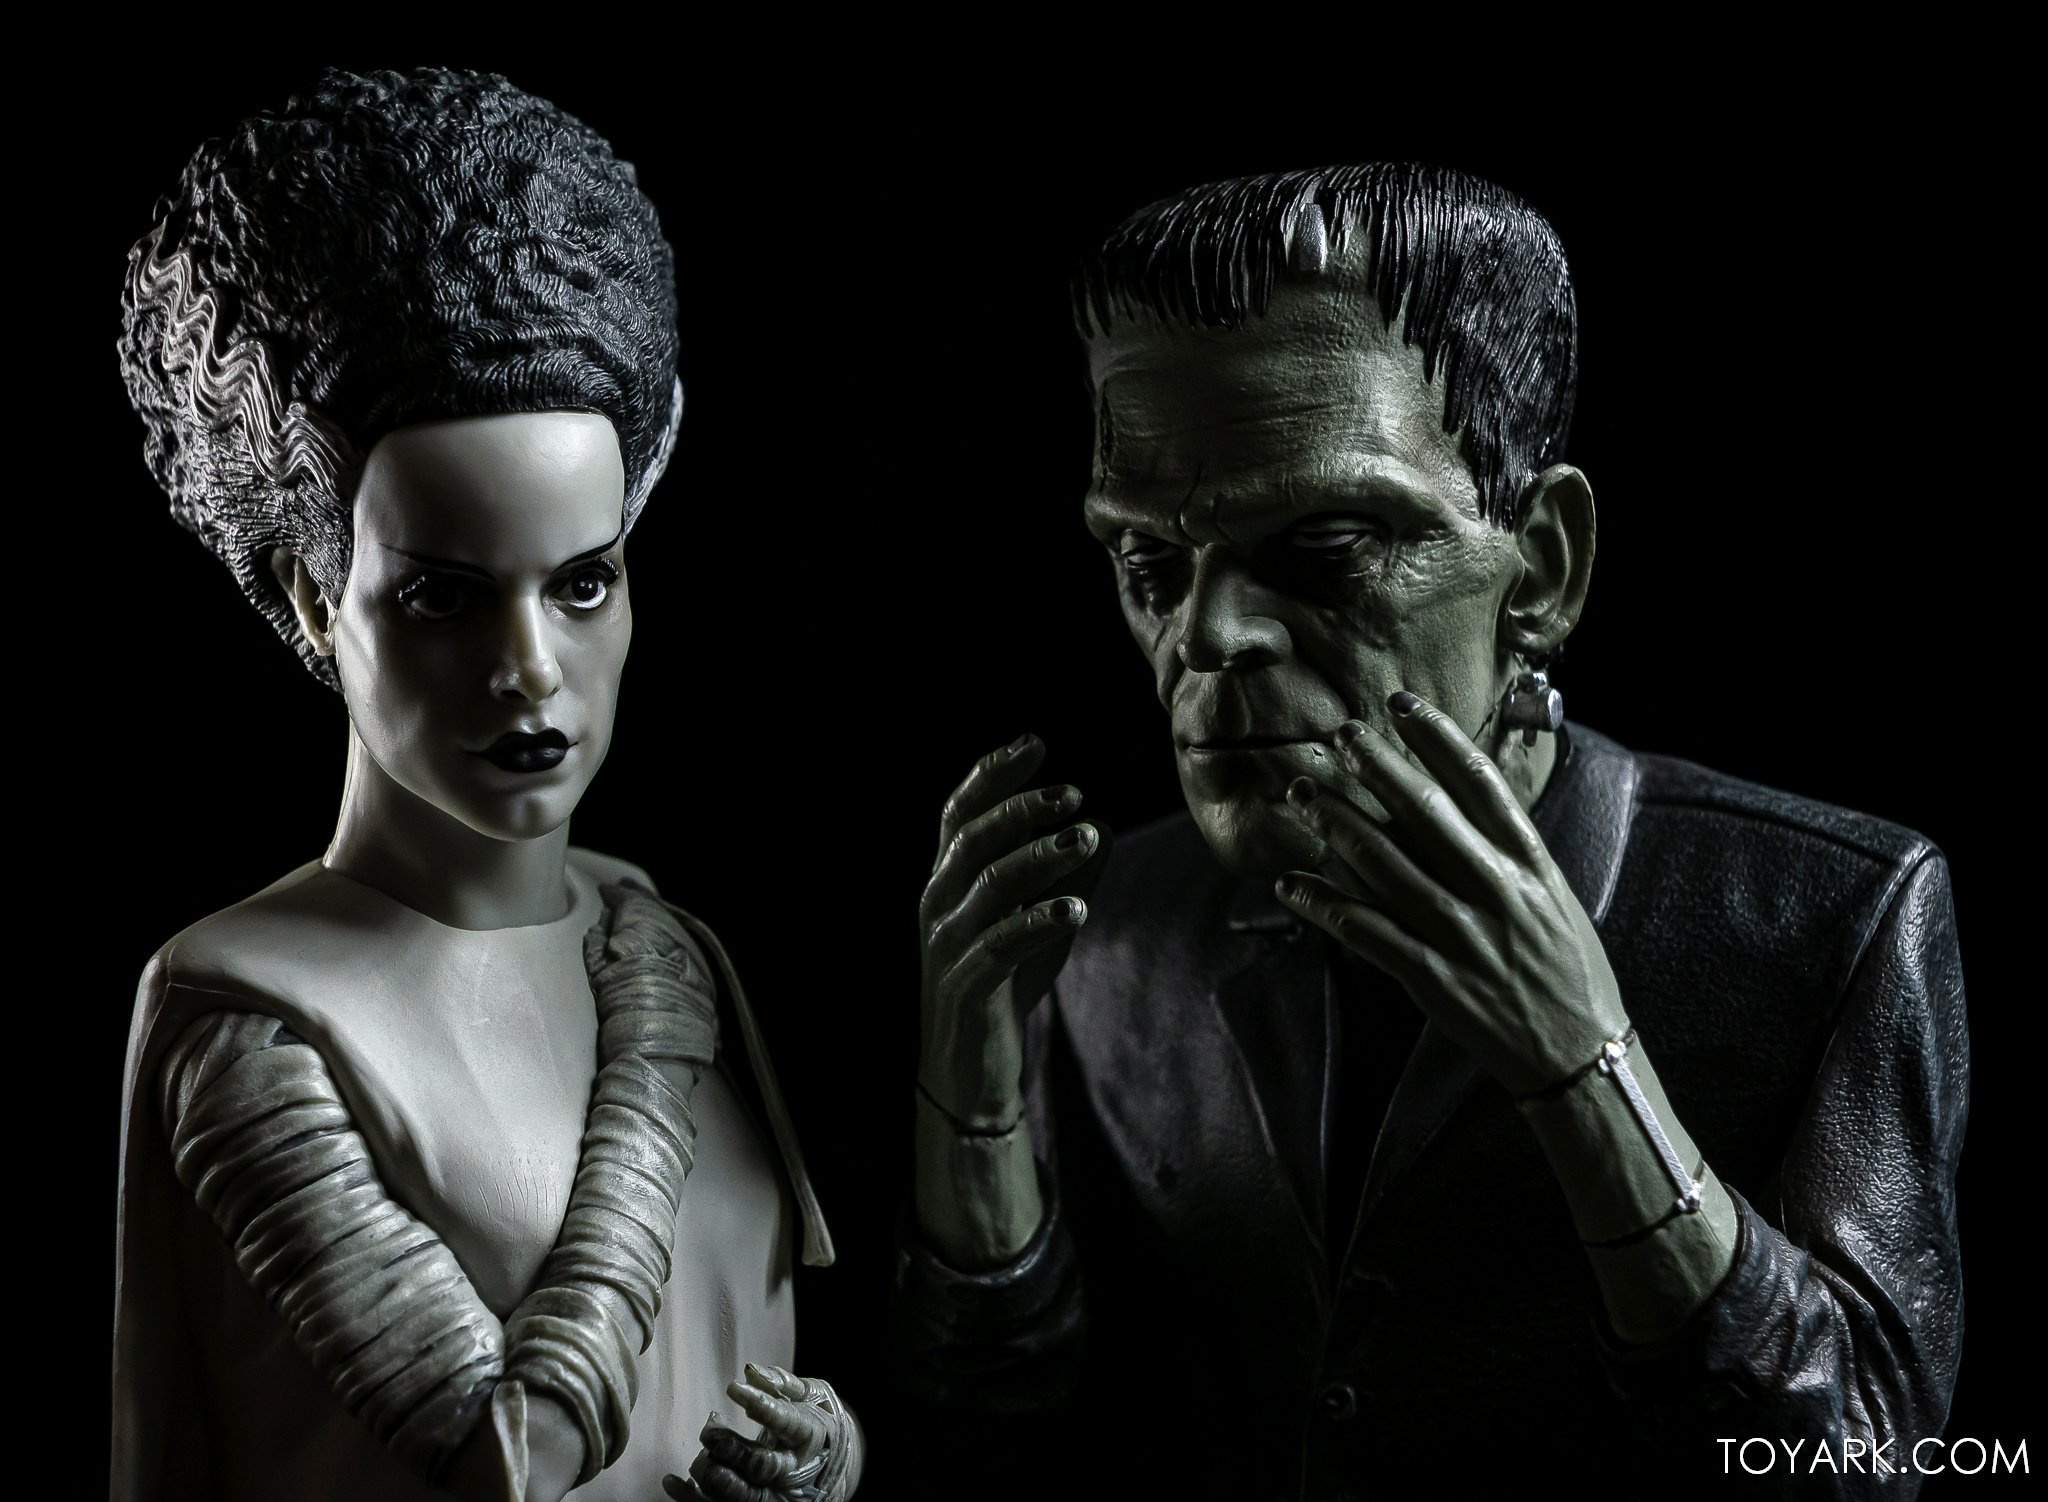 https://news.toyark.com/wp-content/uploads/sites/4/2020/10/Bride-of-Frankenstein-Spinature-012.jpg